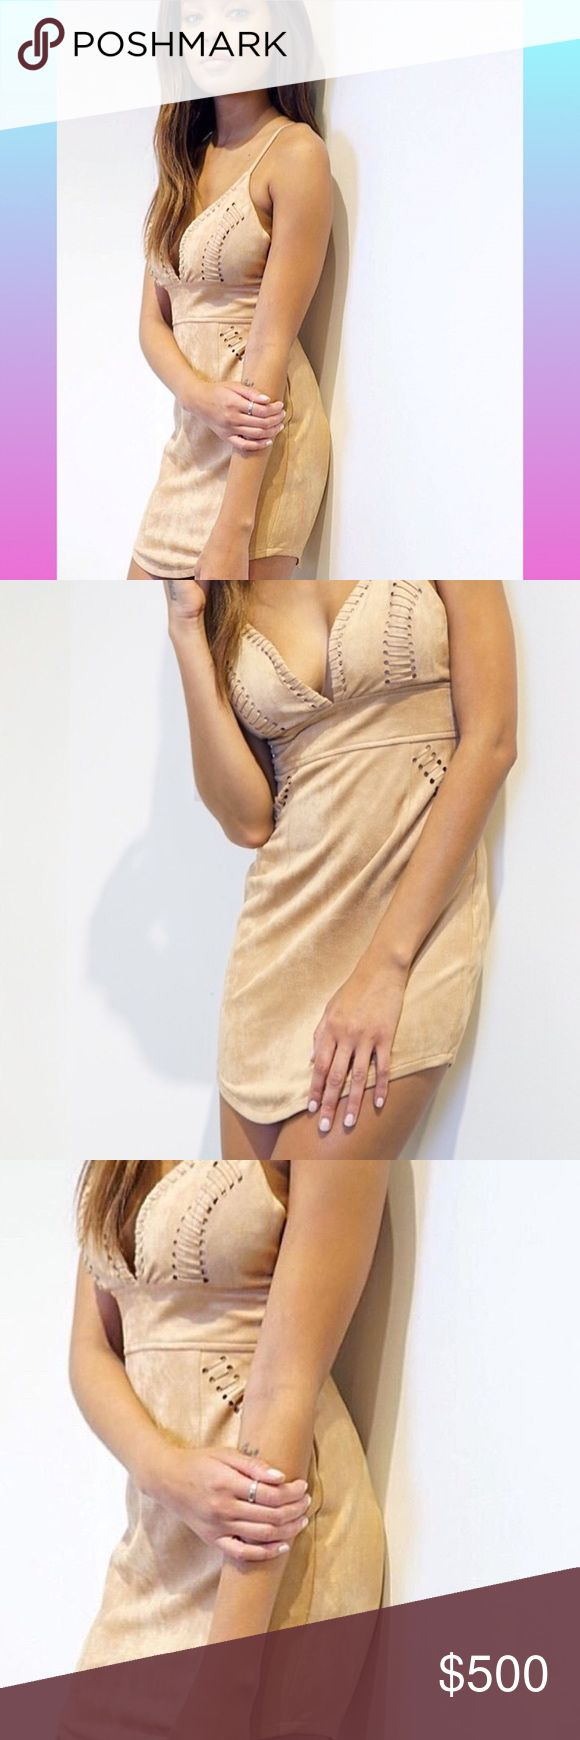 """Bohemian Summer Dress - Desert Vibes Laced-Up Beautiful Laced Up Sides & low cut dress by Tea & Cup 